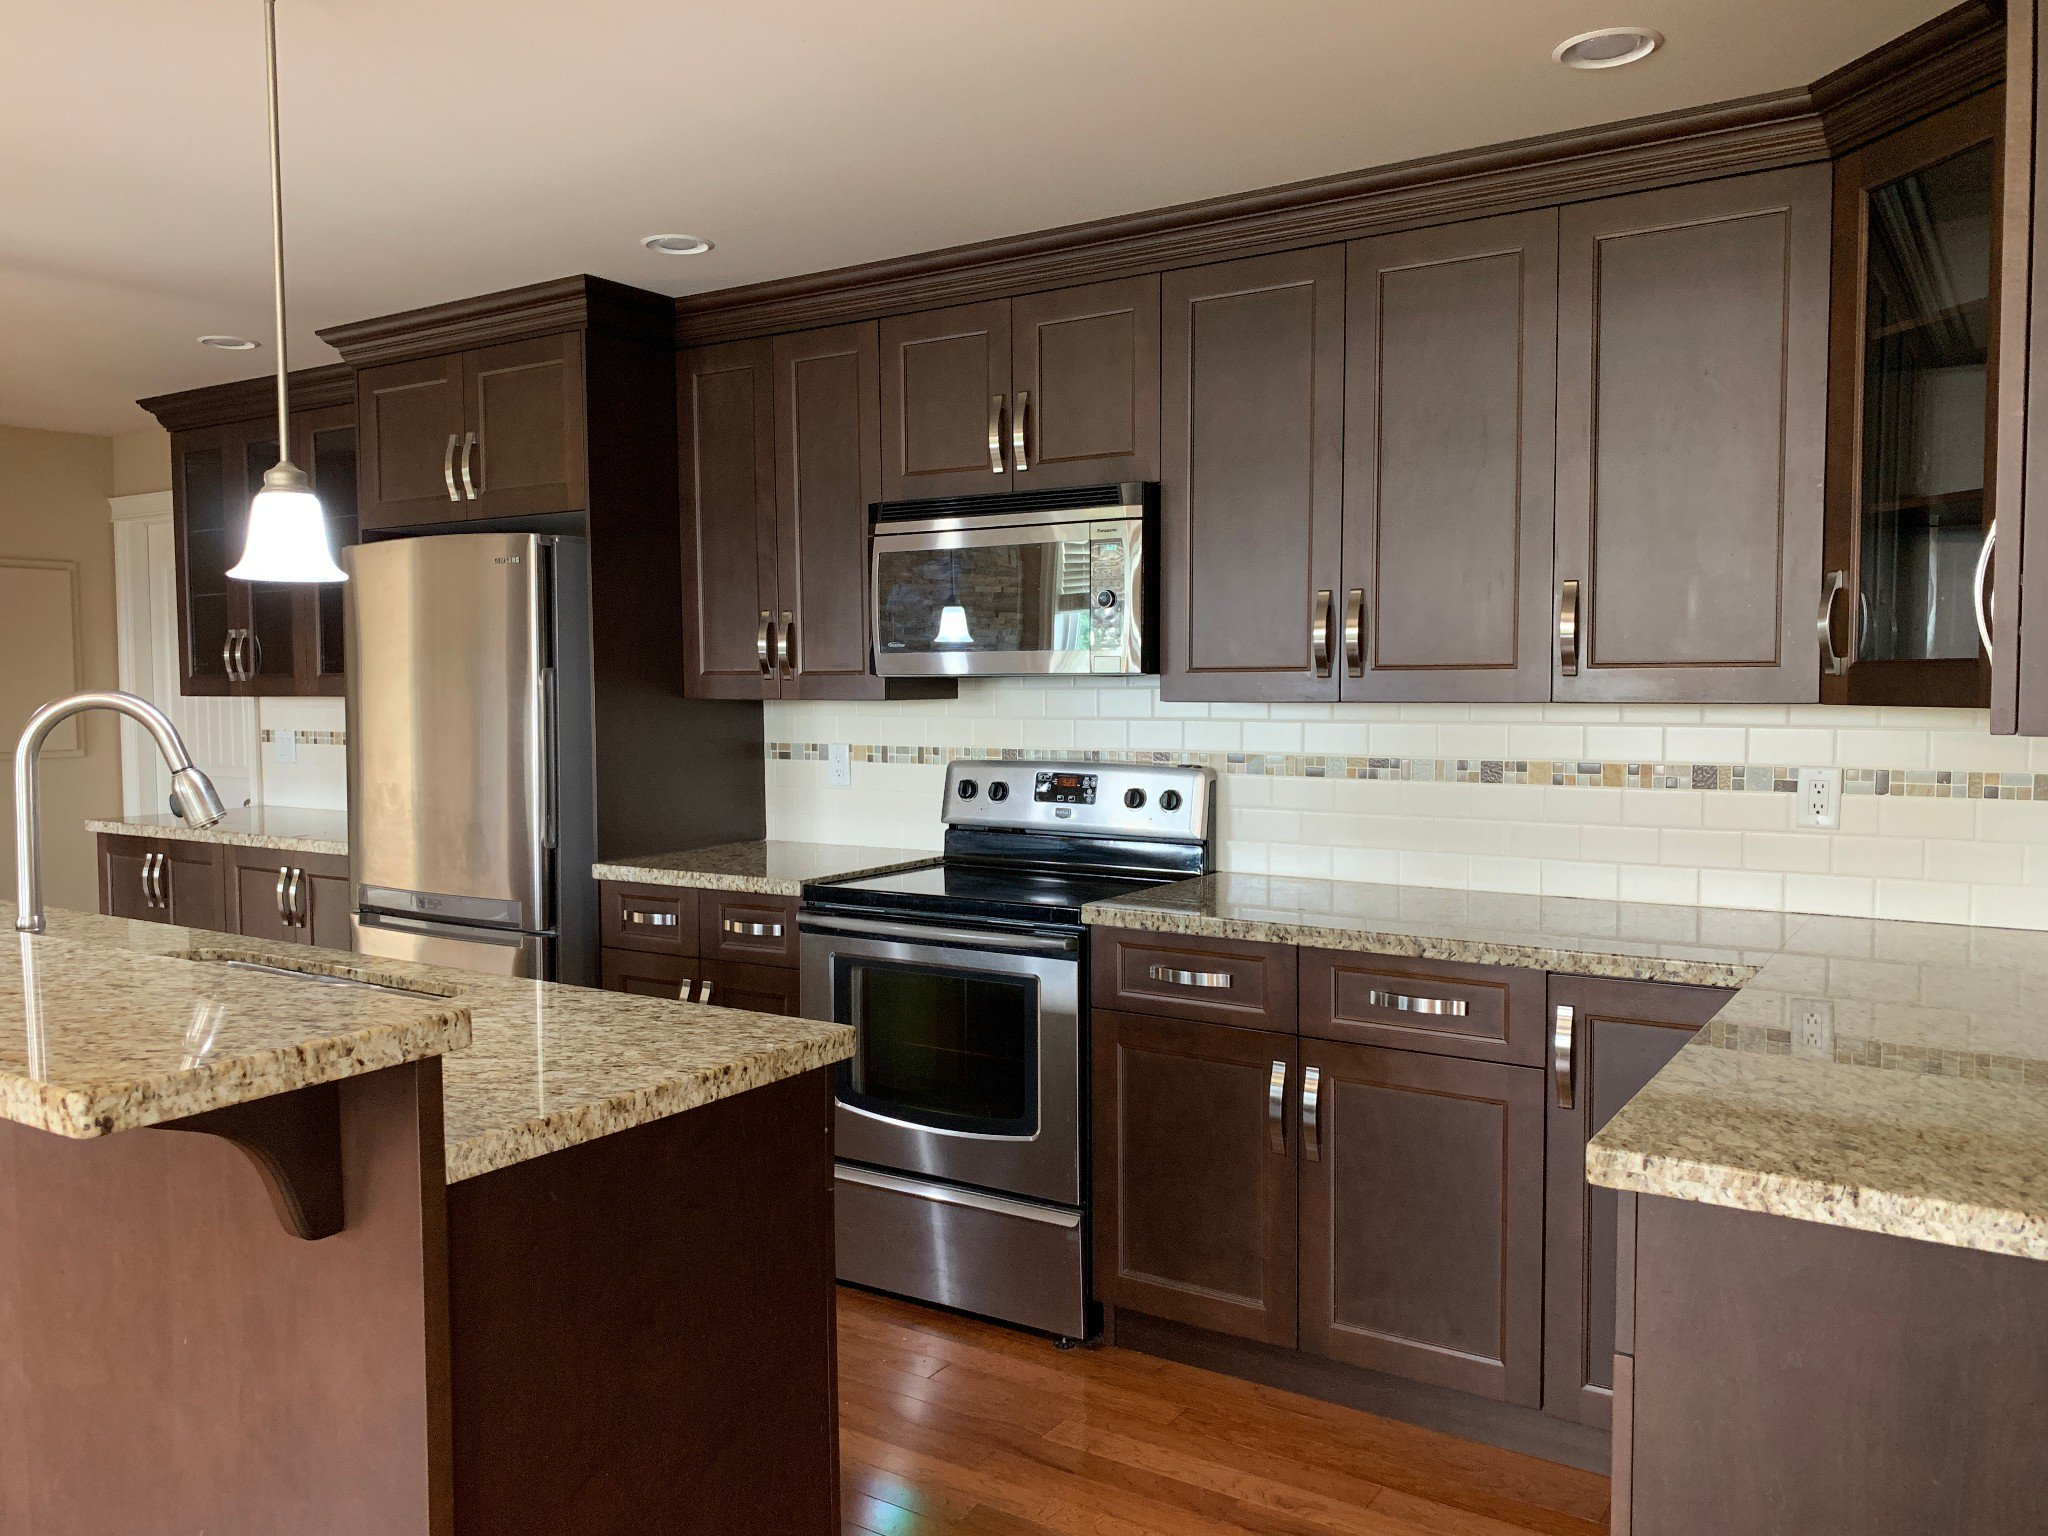 Photo 2: Photos: BSMT 3975 Caves Court in Abbotsford: Abbotsford East Condo for rent